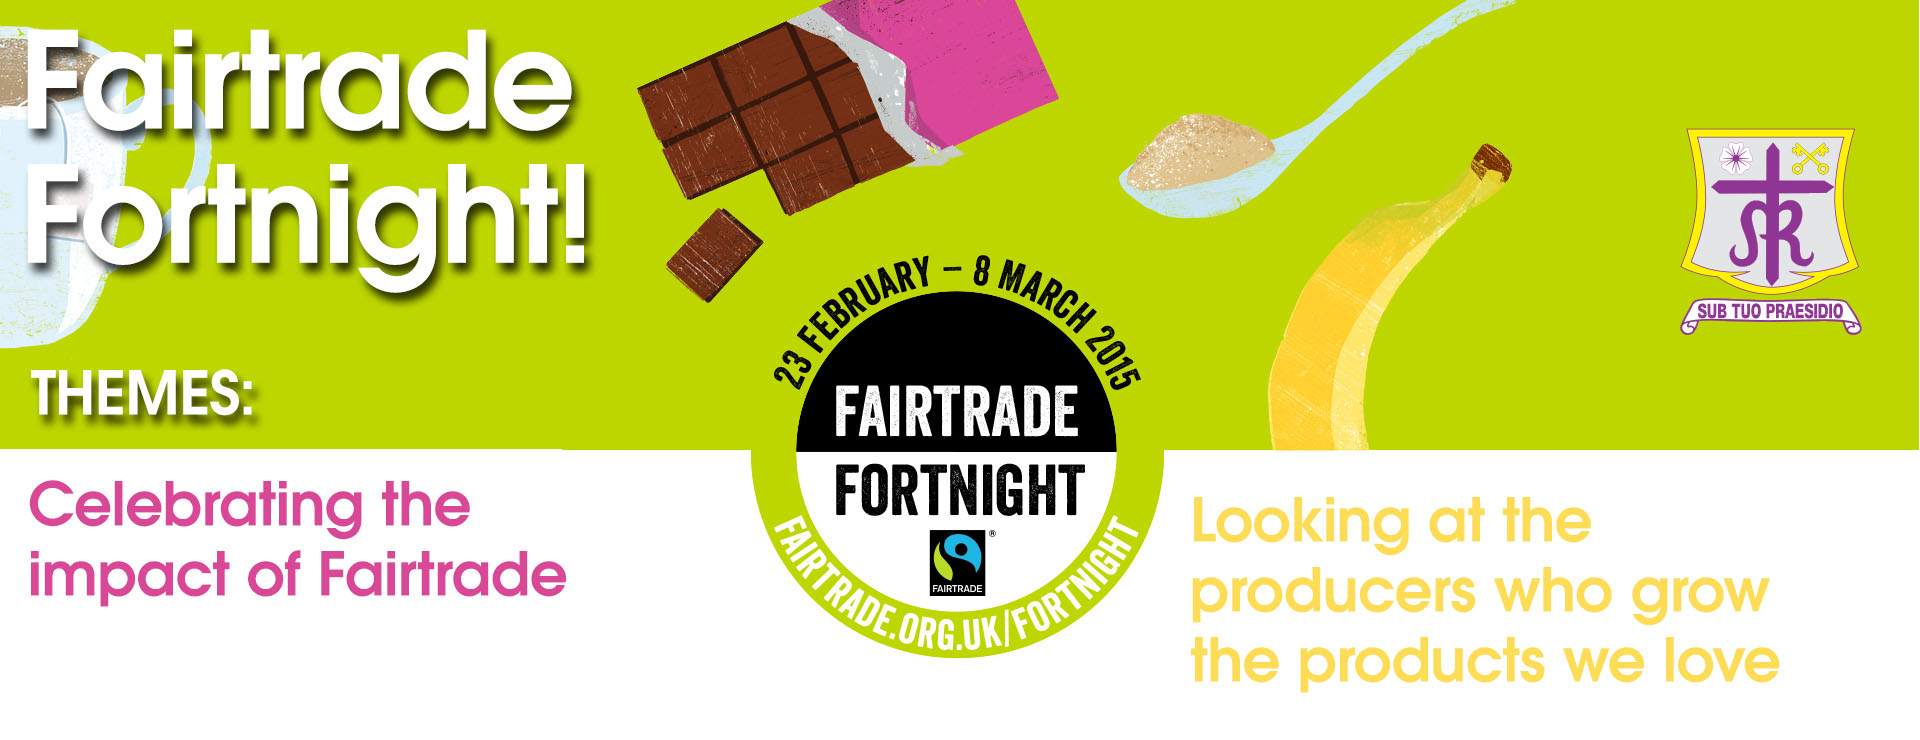 Fairtrade fortnight 01.jpg